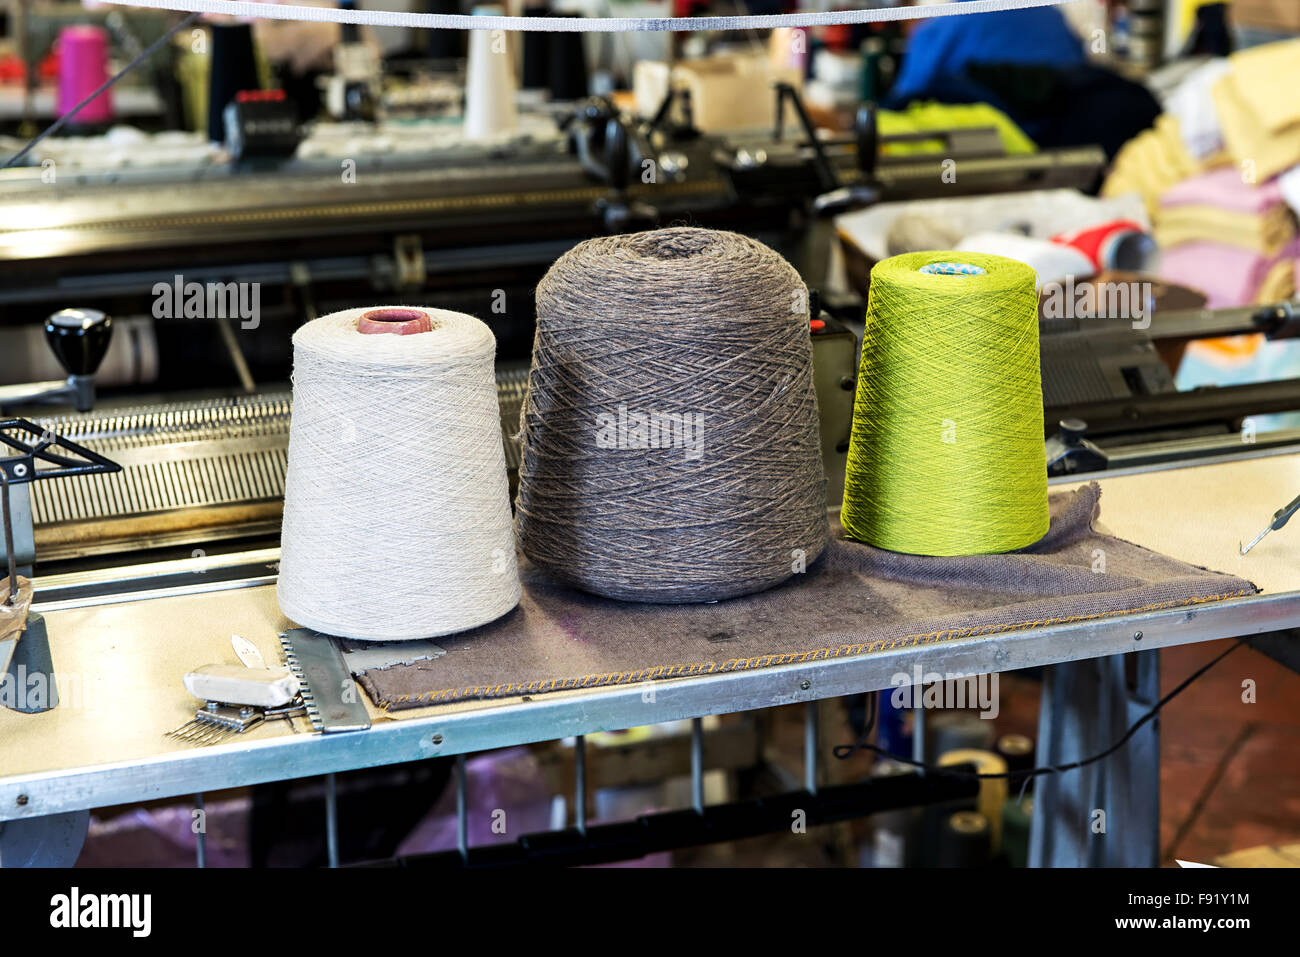 Detail of Three Industrial Size Spools of Cotton Thread in Variety of Colors in Industrial Manufacturing Warehouse - Stock Image